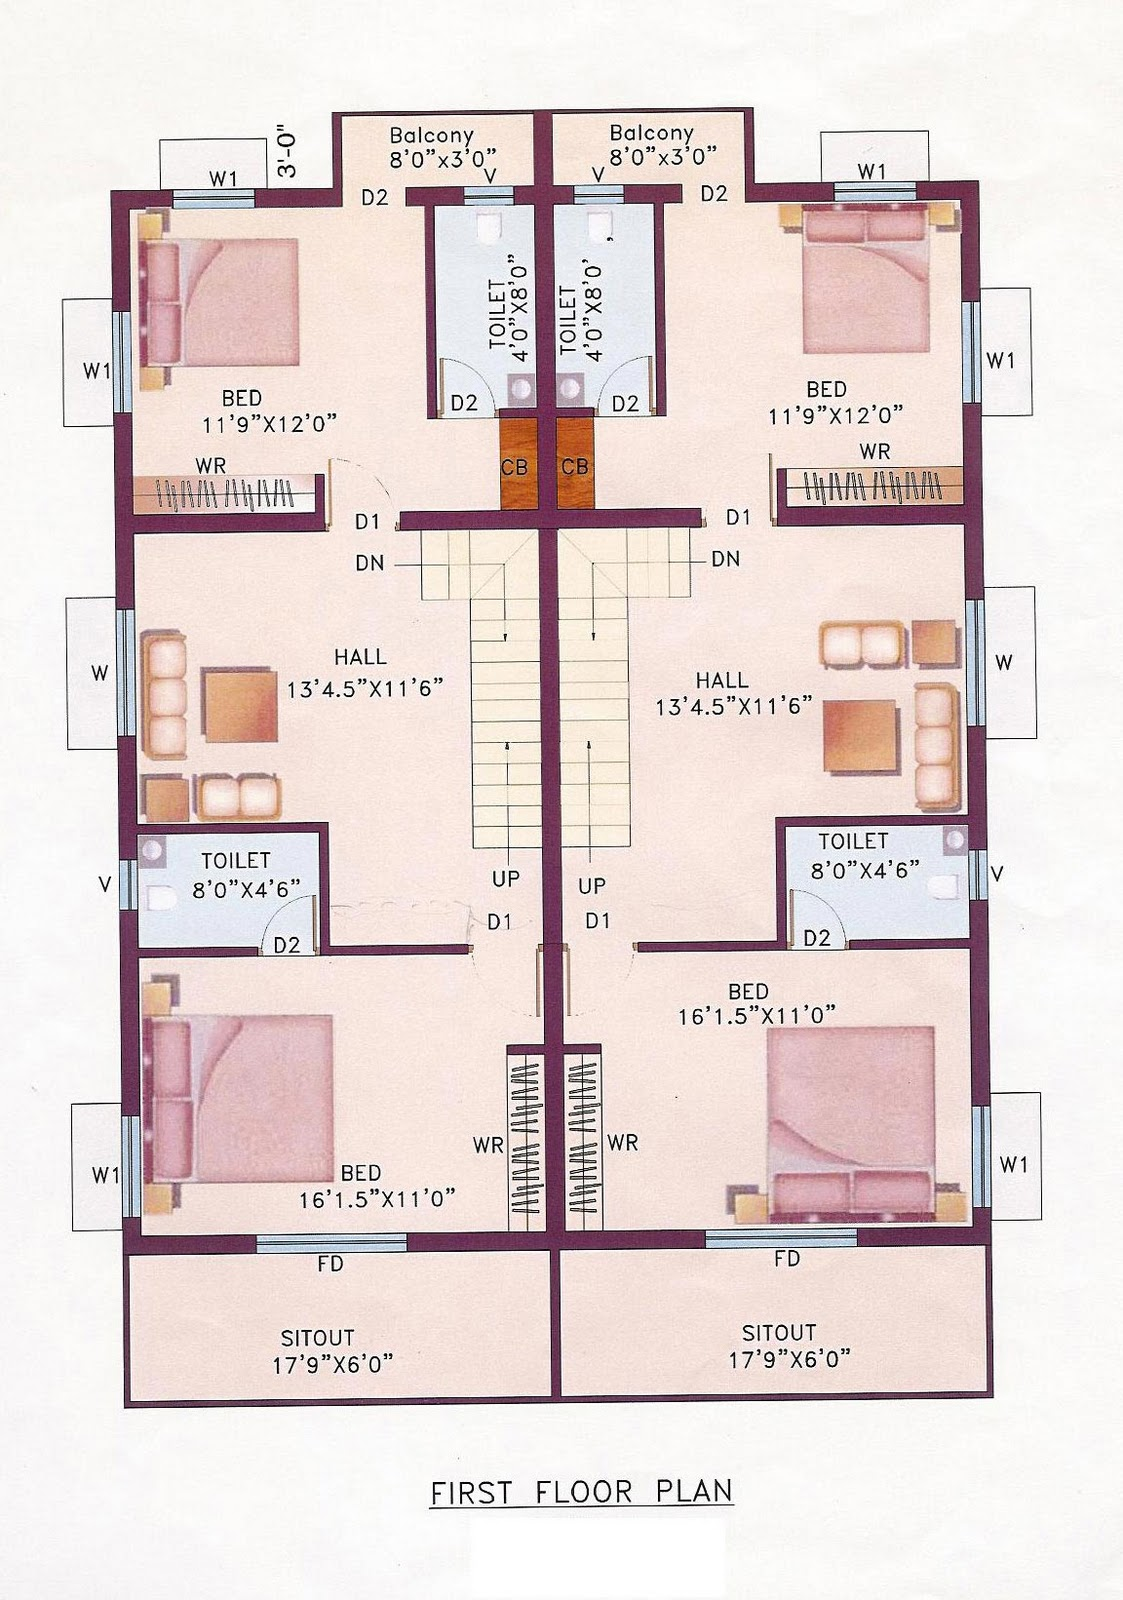 House plans and home designs free blog archive home for Best indian architectural affordable home designs